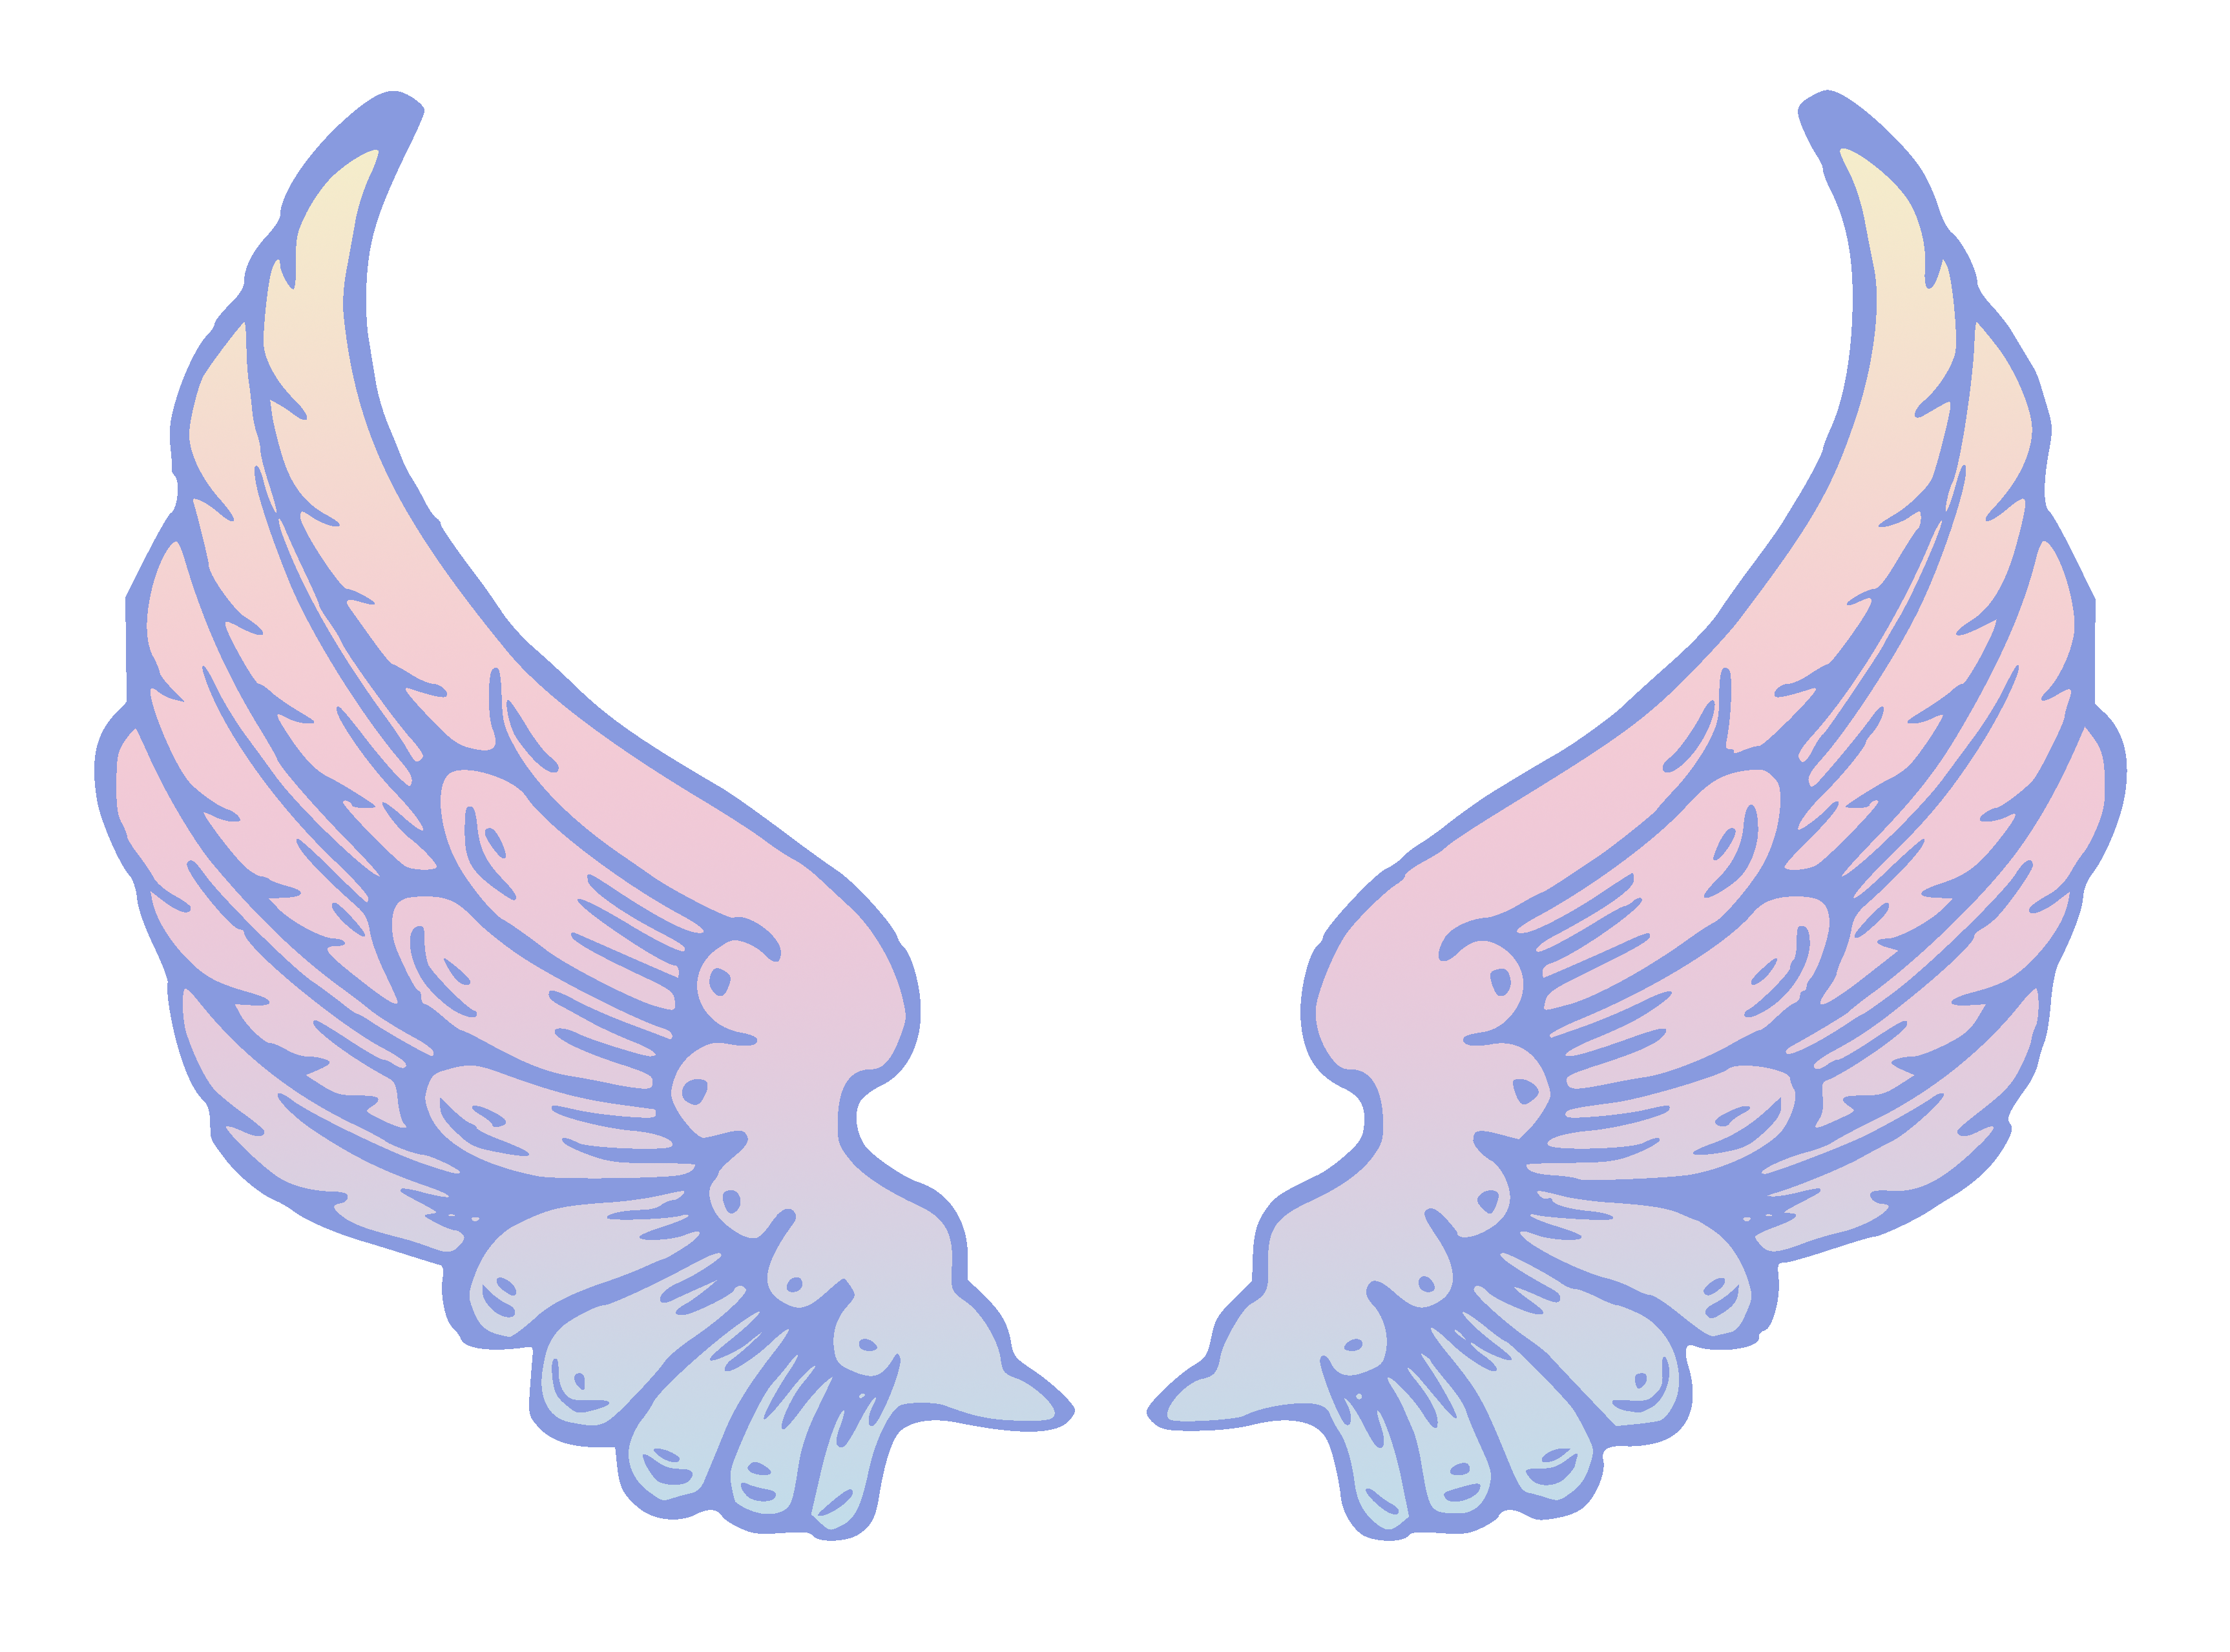 Halo clipart free wing Clipart 3 Clipartix wings clipartputers